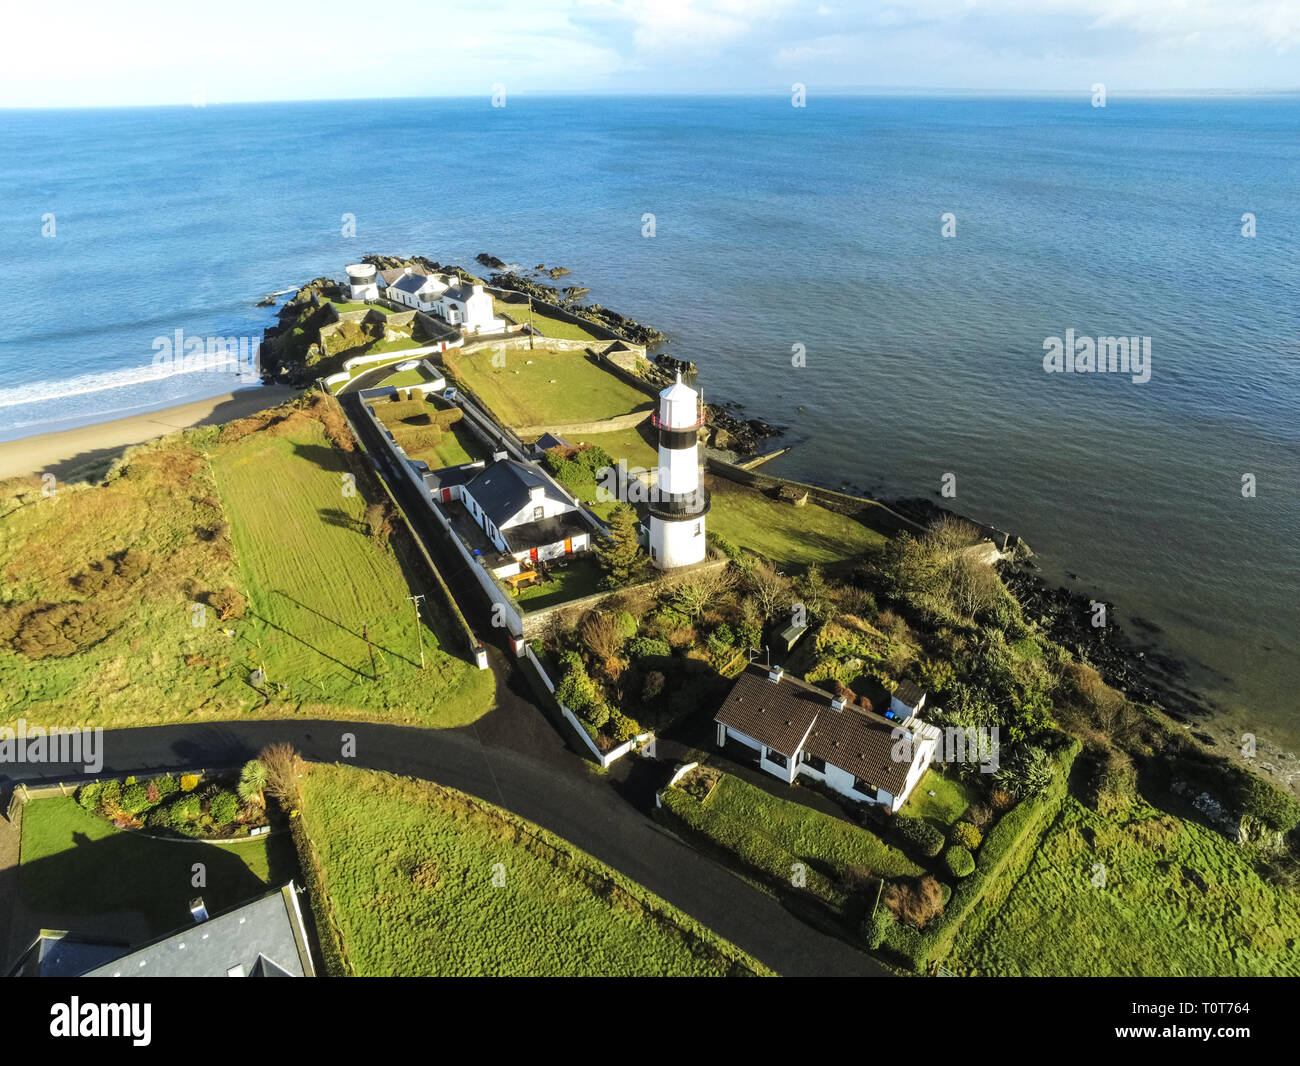 This is an aerial picture of Stroove beach and Lighthouse on the Inishowen penisula, Donegal Ireland - Stock Image